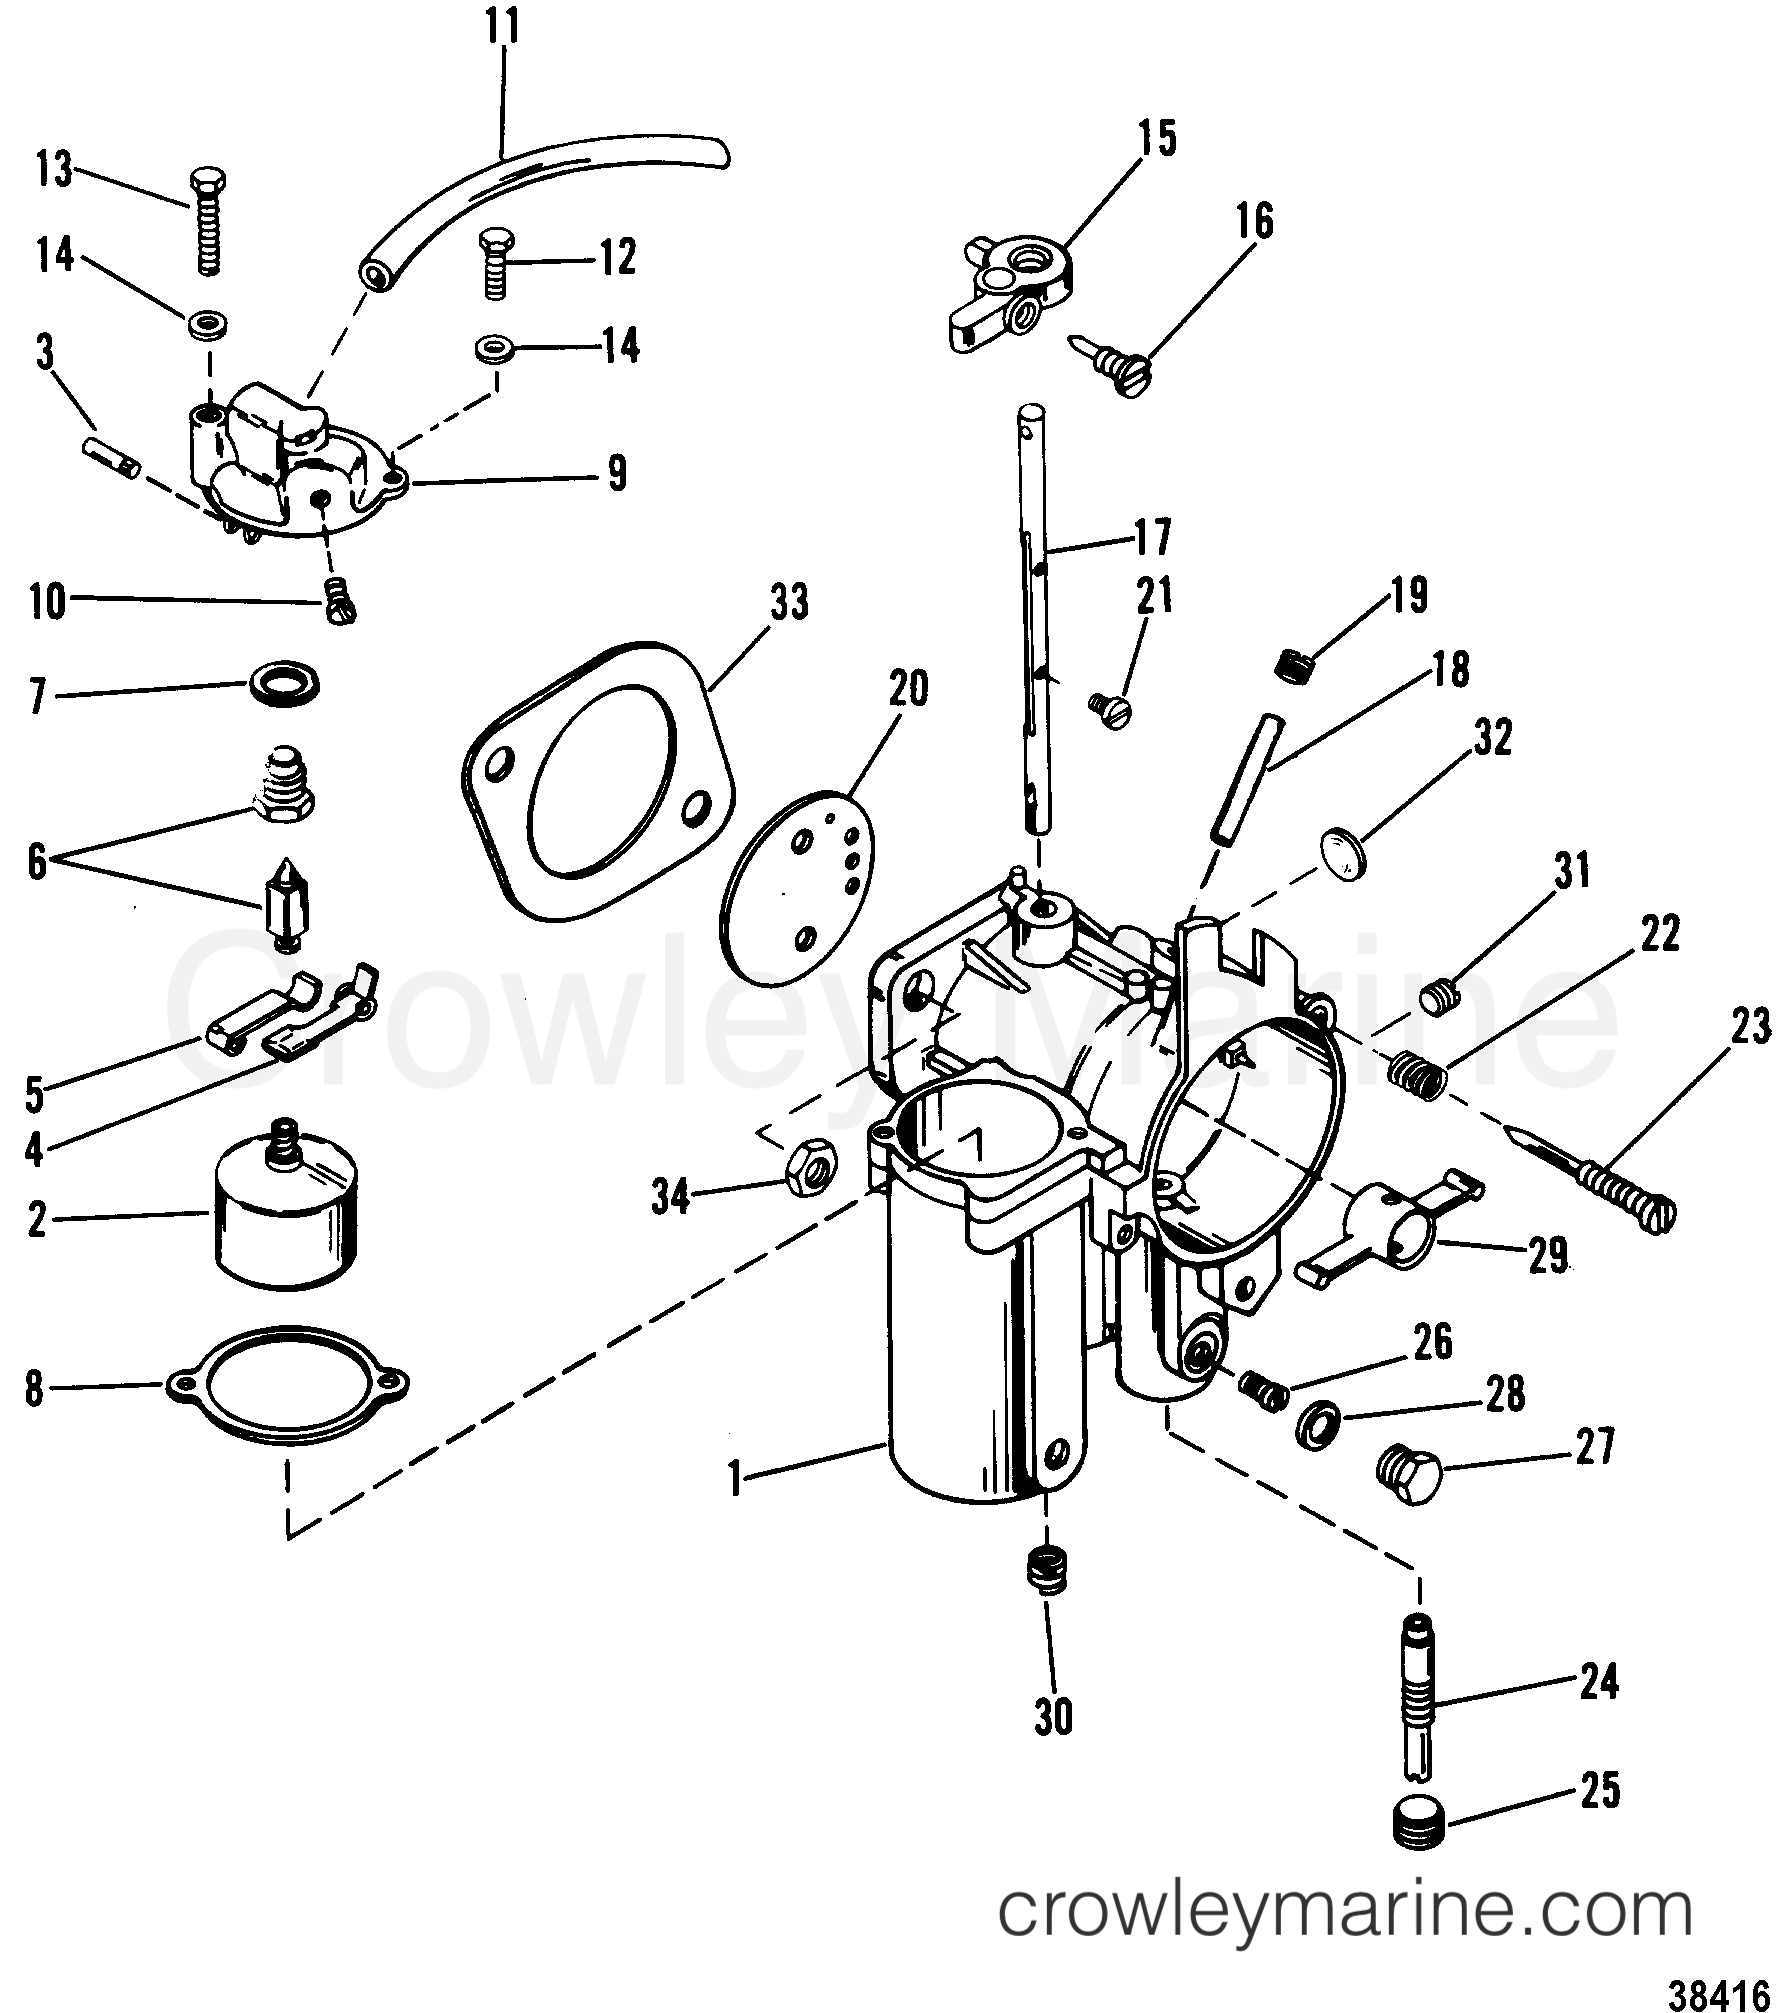 90 hp mercury outboard wiring diagram pdf